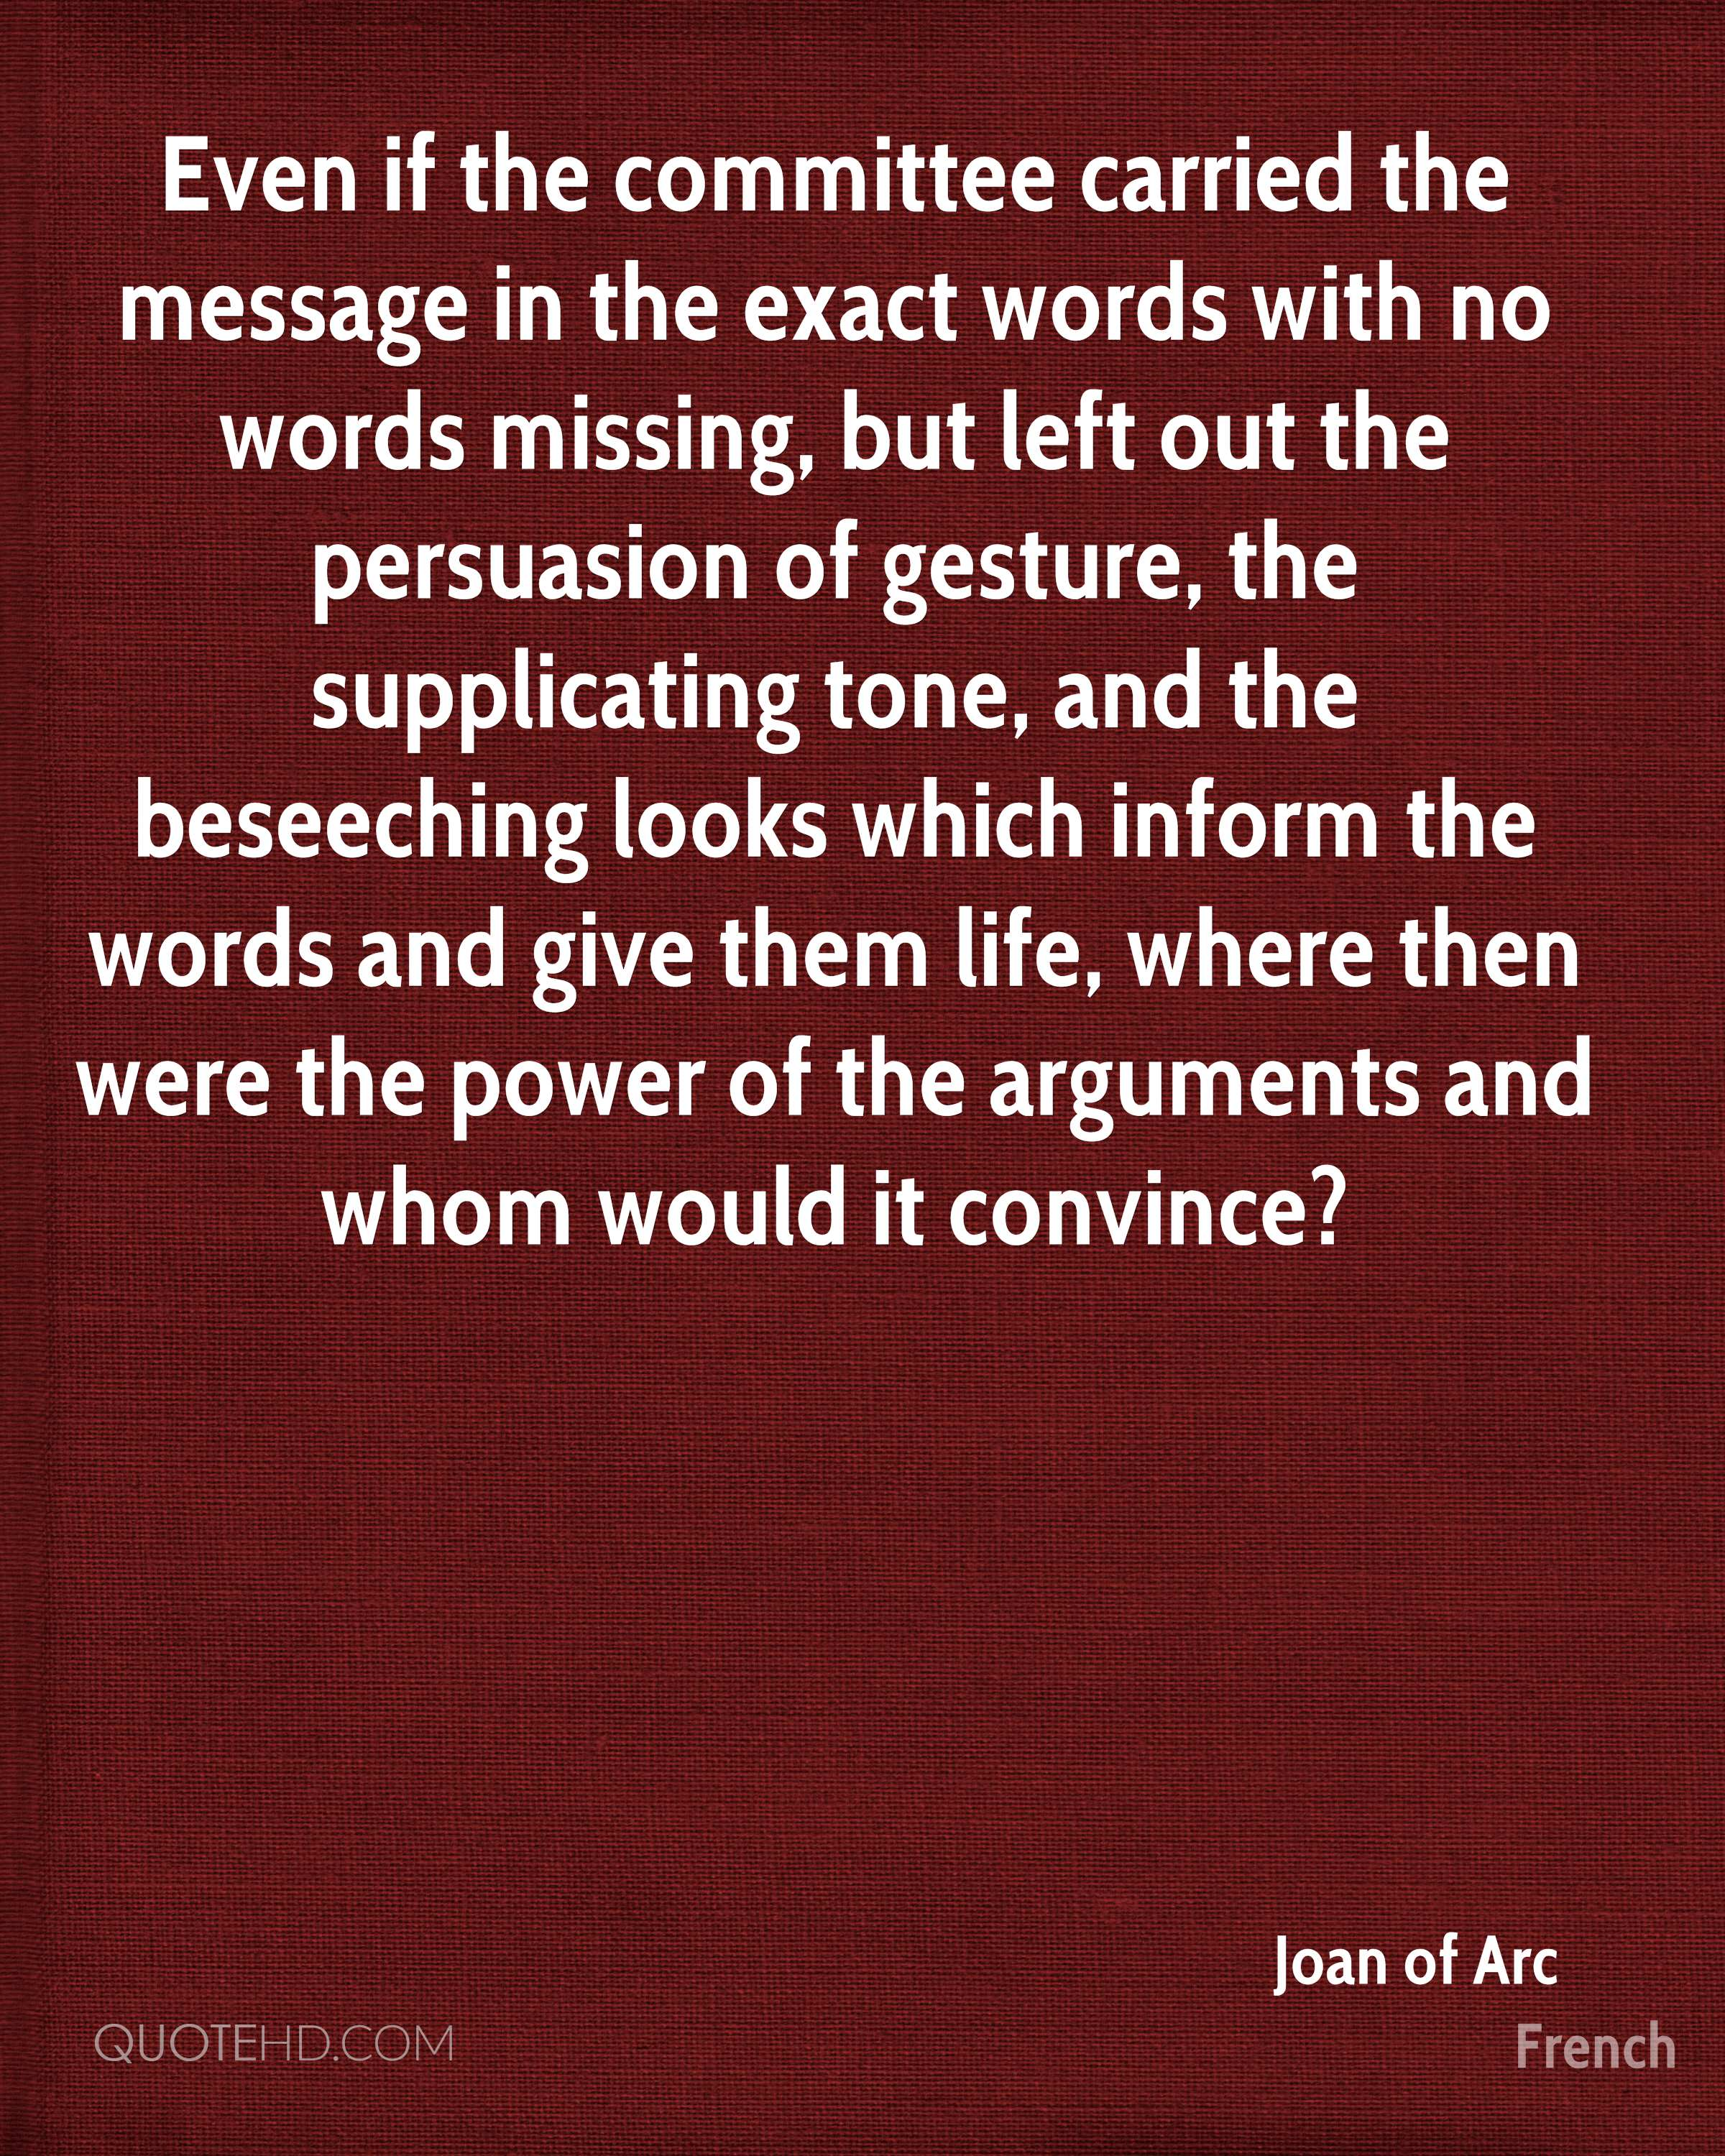 Even if the committee carried the message in the exact words with no words missing, but left out the persuasion of gesture, the supplicating tone, and the beseeching looks which inform the words and give them life, where then were the power of the arguments and whom would it convince?